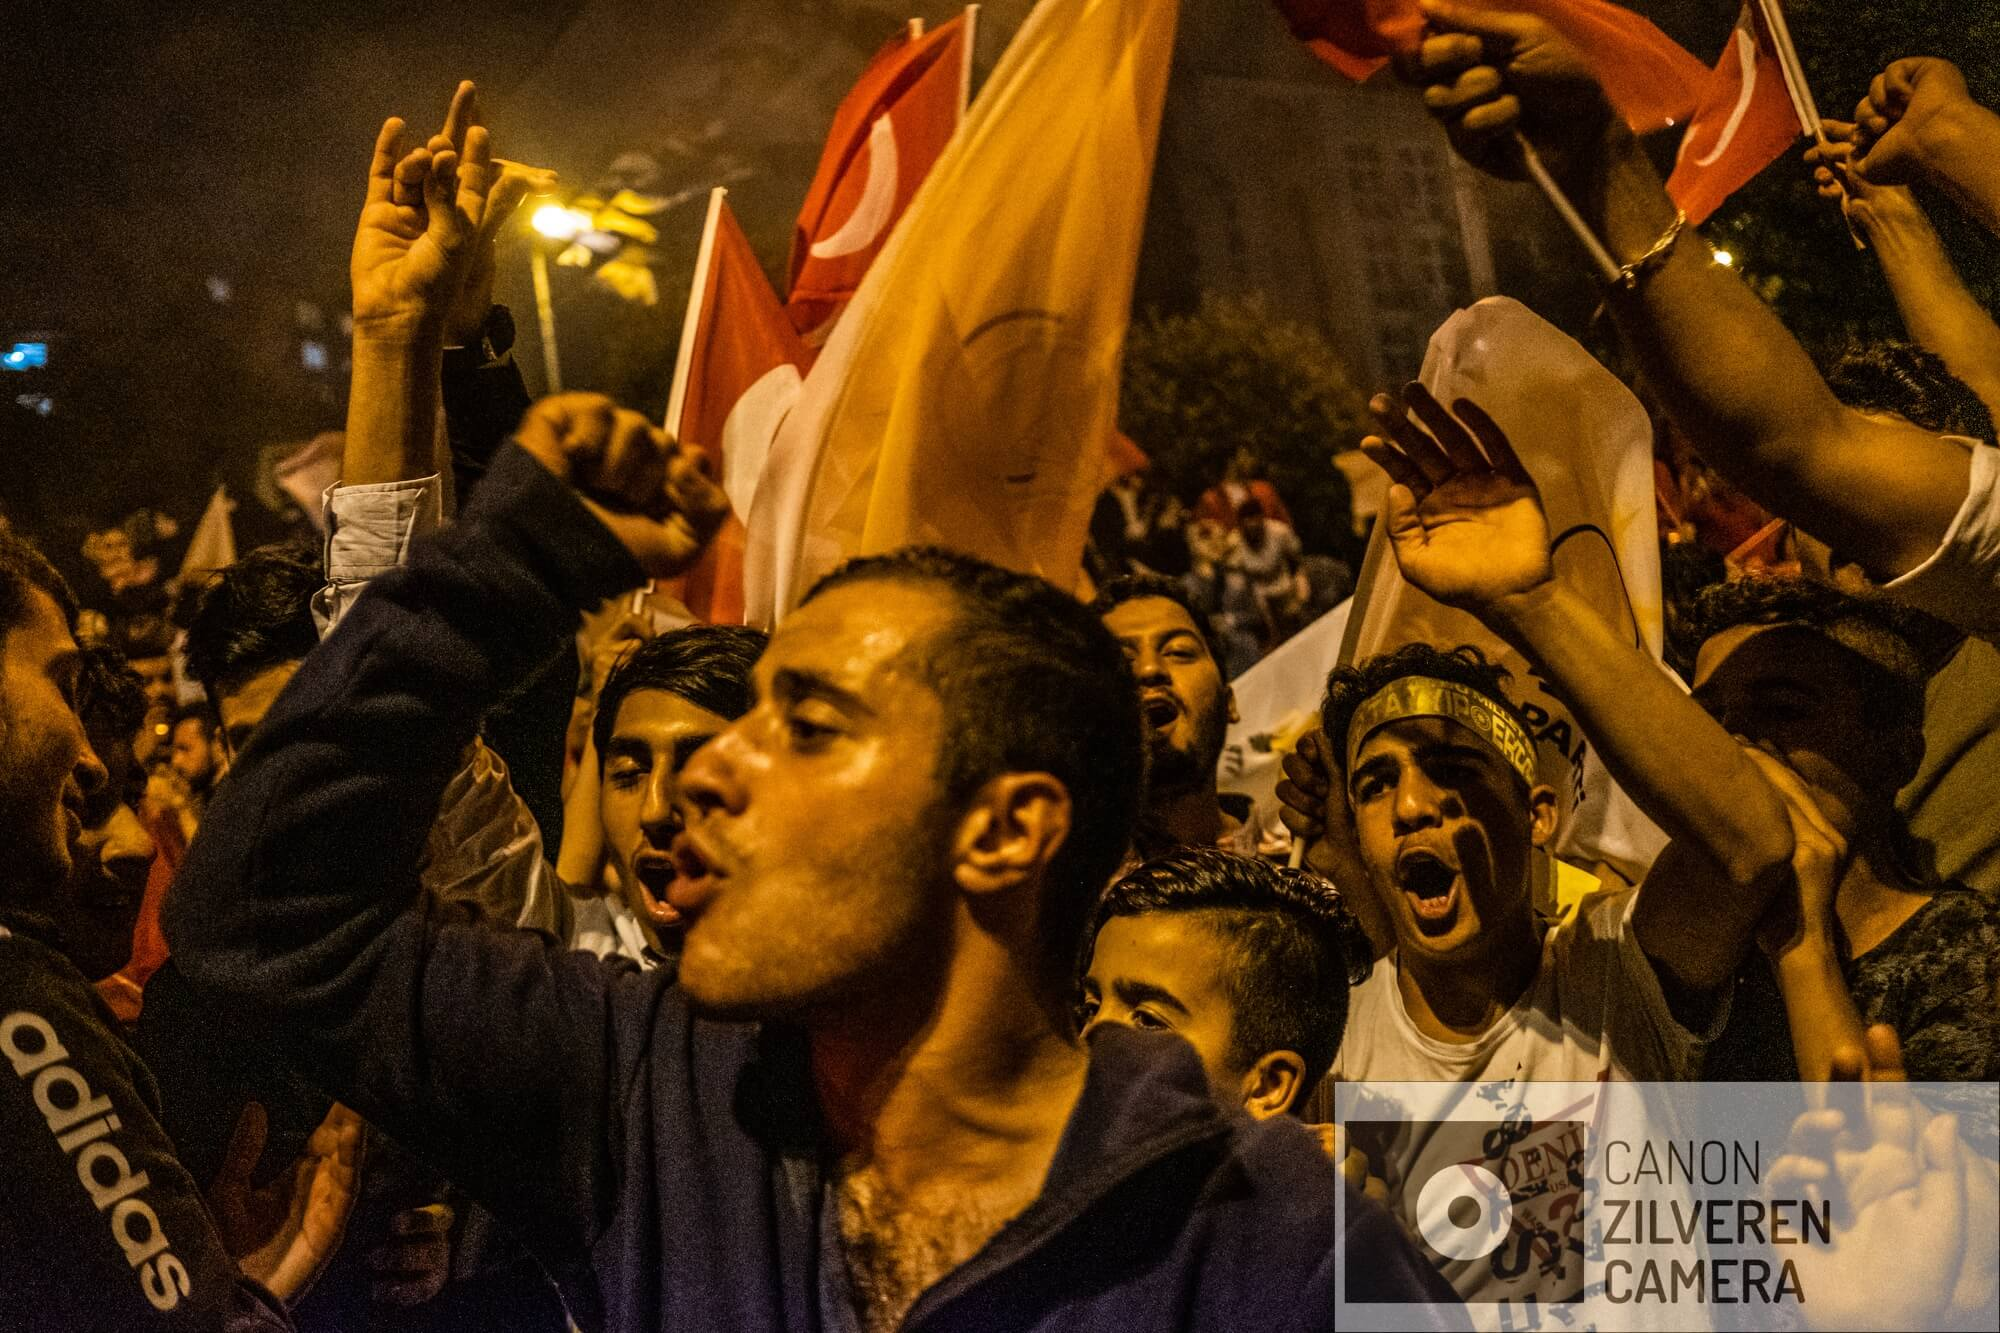 Istanbul, Turkey, June 24, 2018 | PHOTO #5 | AKP supporters are celebrating Erdogan's victory during the 2018 elections in front of the AKP headquarters in Istanbul. Photo: Joris van Gennip